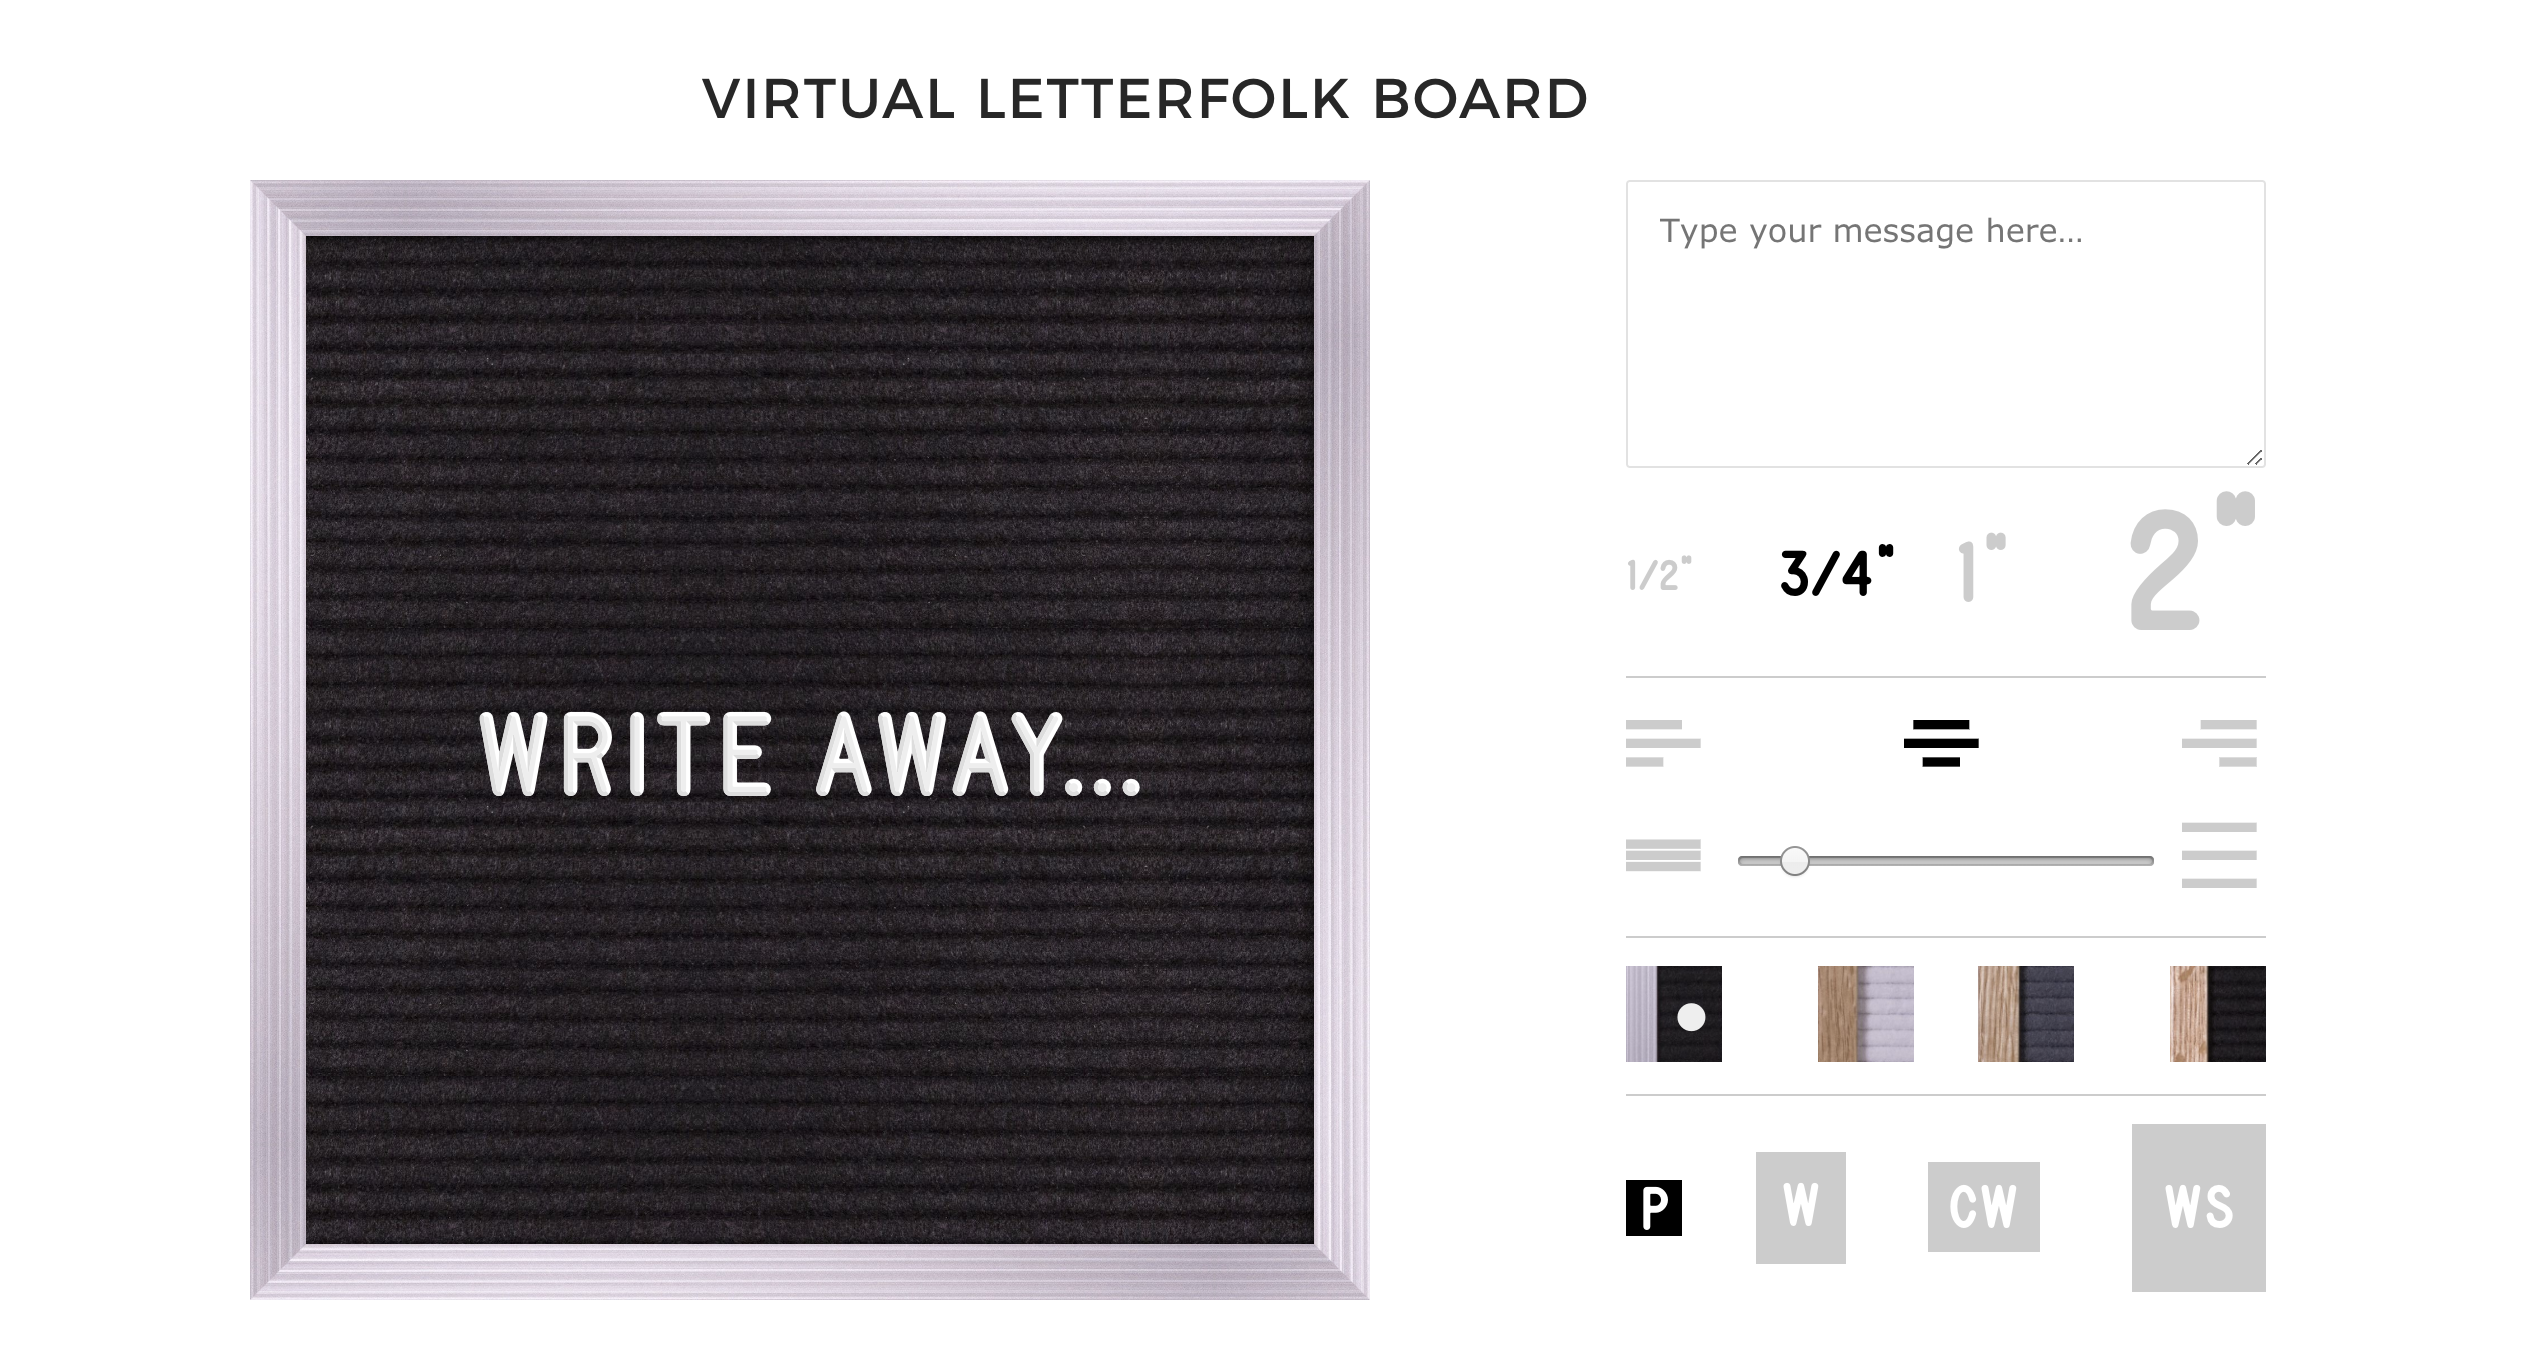 Virtual Letter Board by Letterfolk